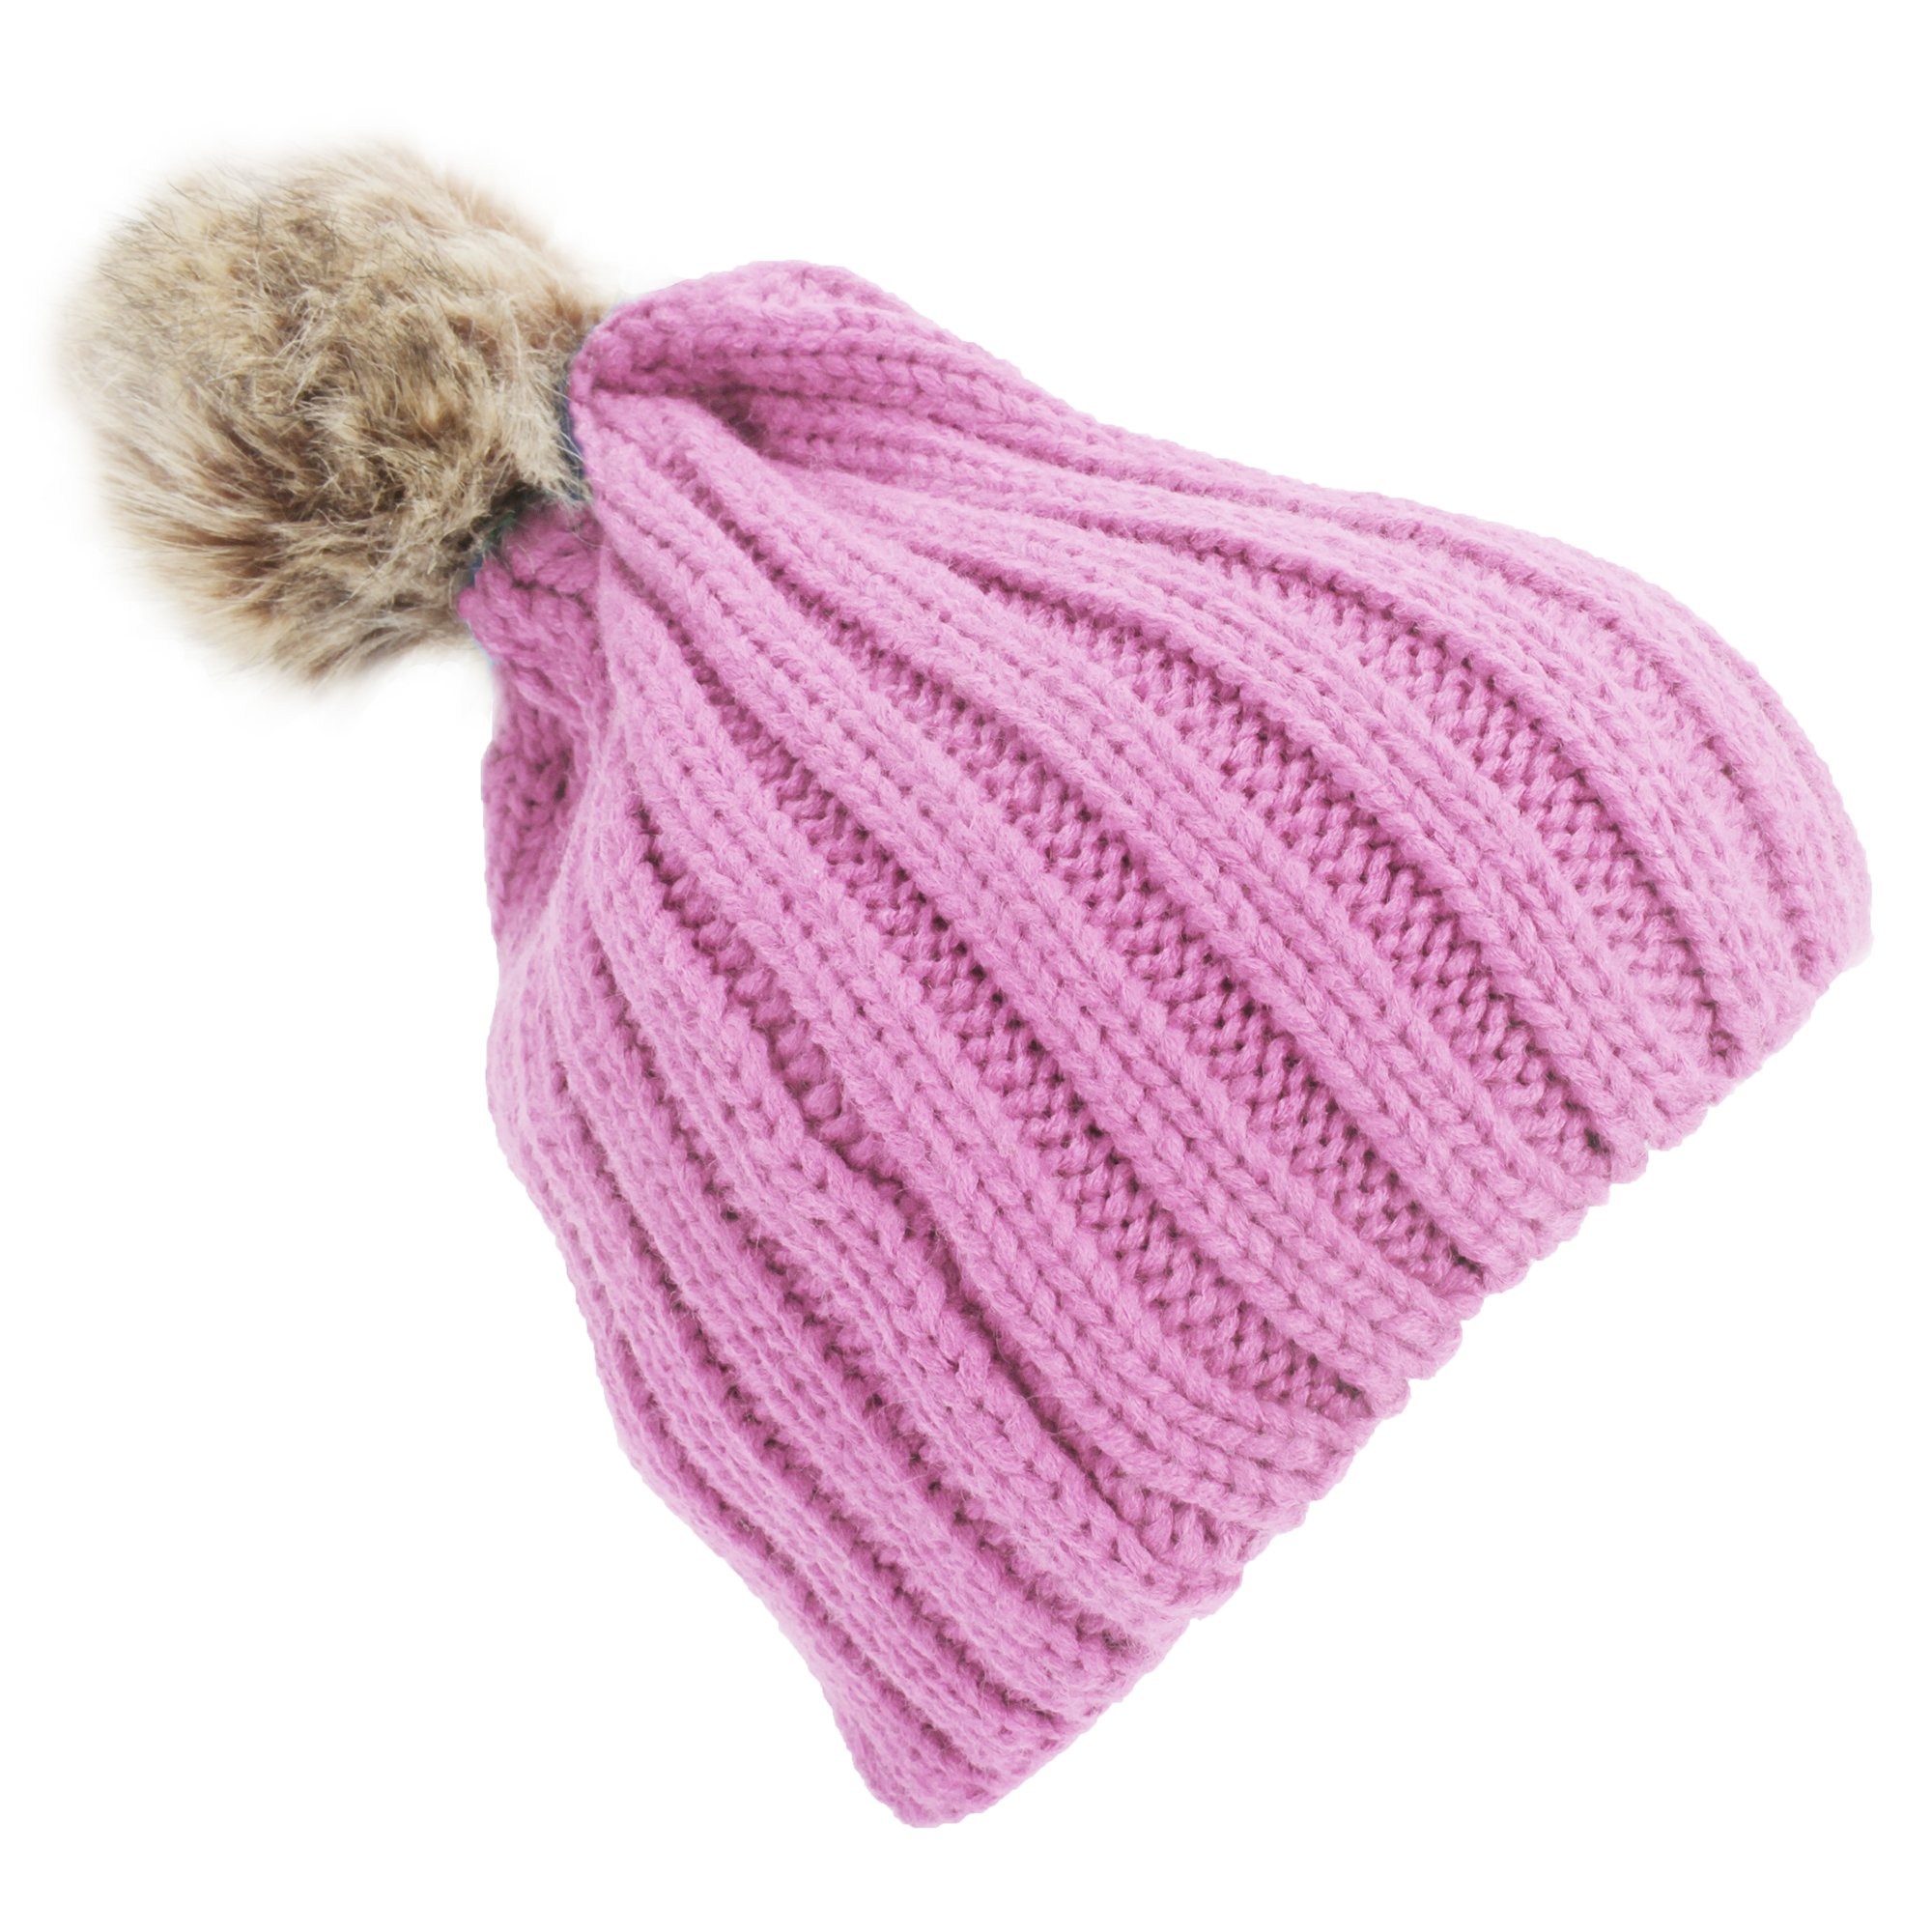 9202ab0d73f Get Quotations · Universal Textiles Childrens Girls Cable Knit Faux Fur Pom  Pom Winter Beanie Hat